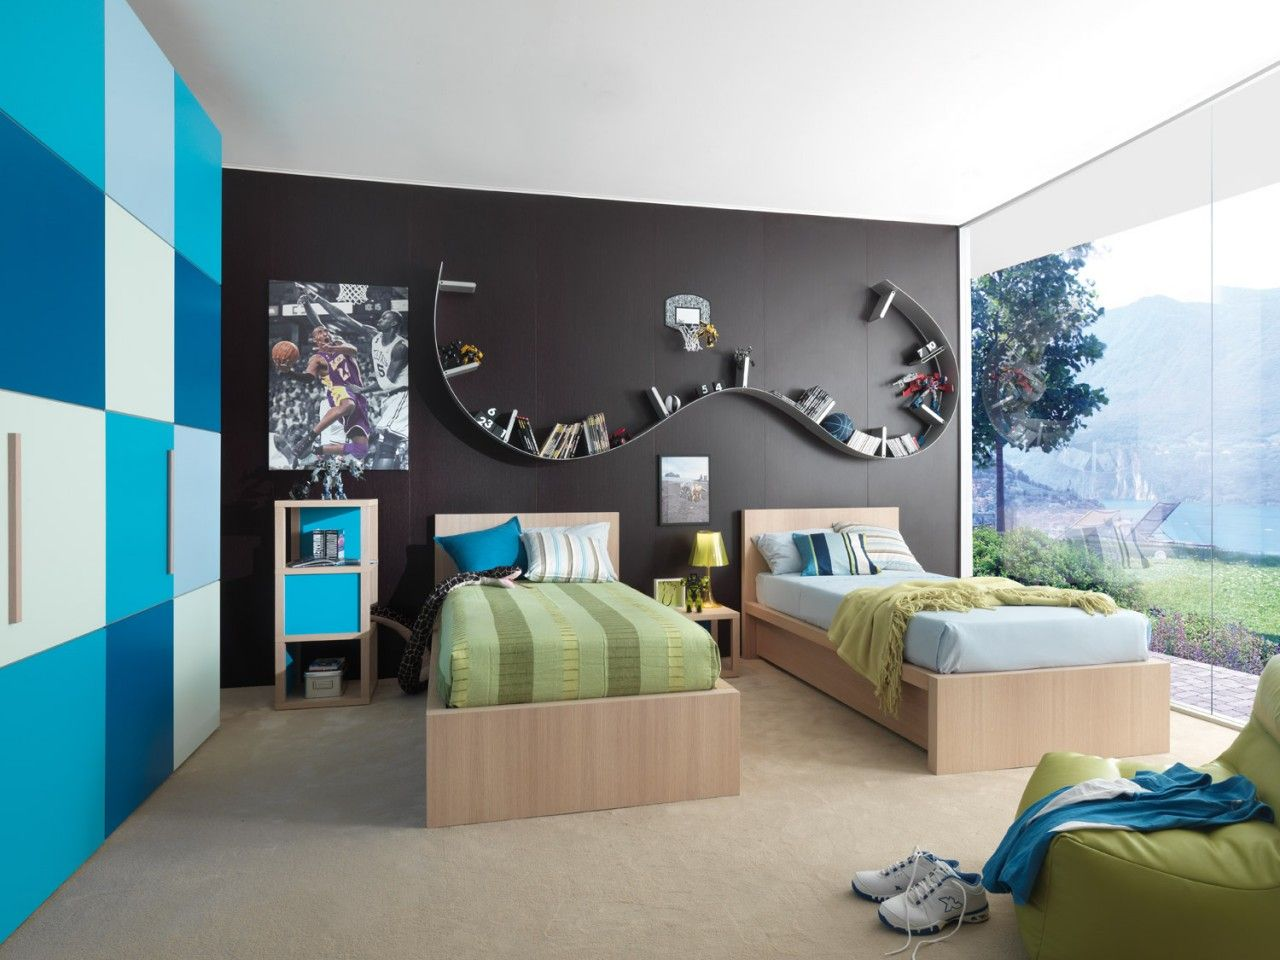 Captivating Black Wall, Checkered Wall, And Book Shelf Is So Cool Too! Blue And Black  Wall Scheme And Twin Bedding Sets In Modern Kids Bedroom Design Ideas Photo Gallery